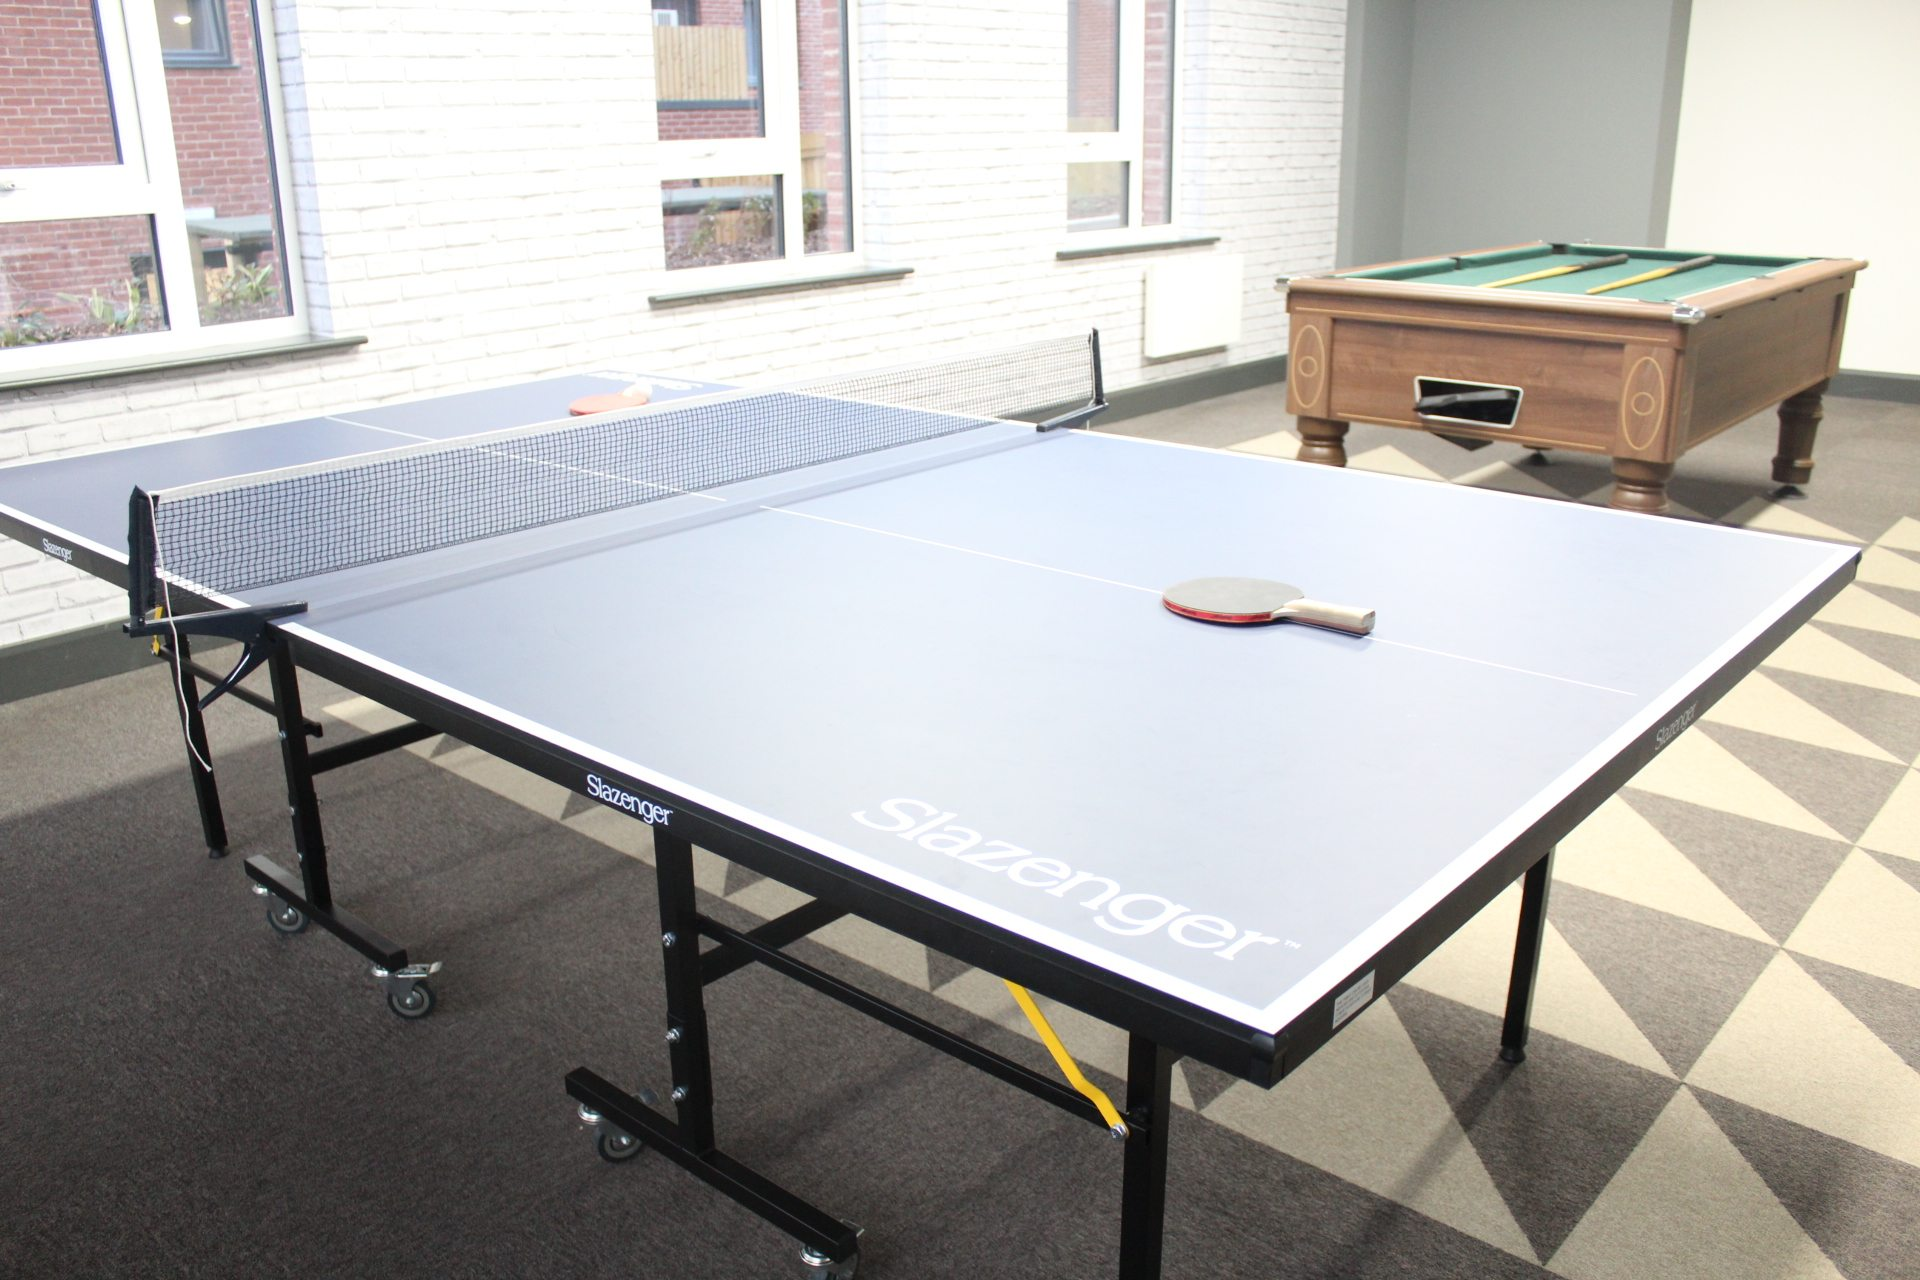 A games room - just one of the fabulous resident facilities at Clarendon Quarter